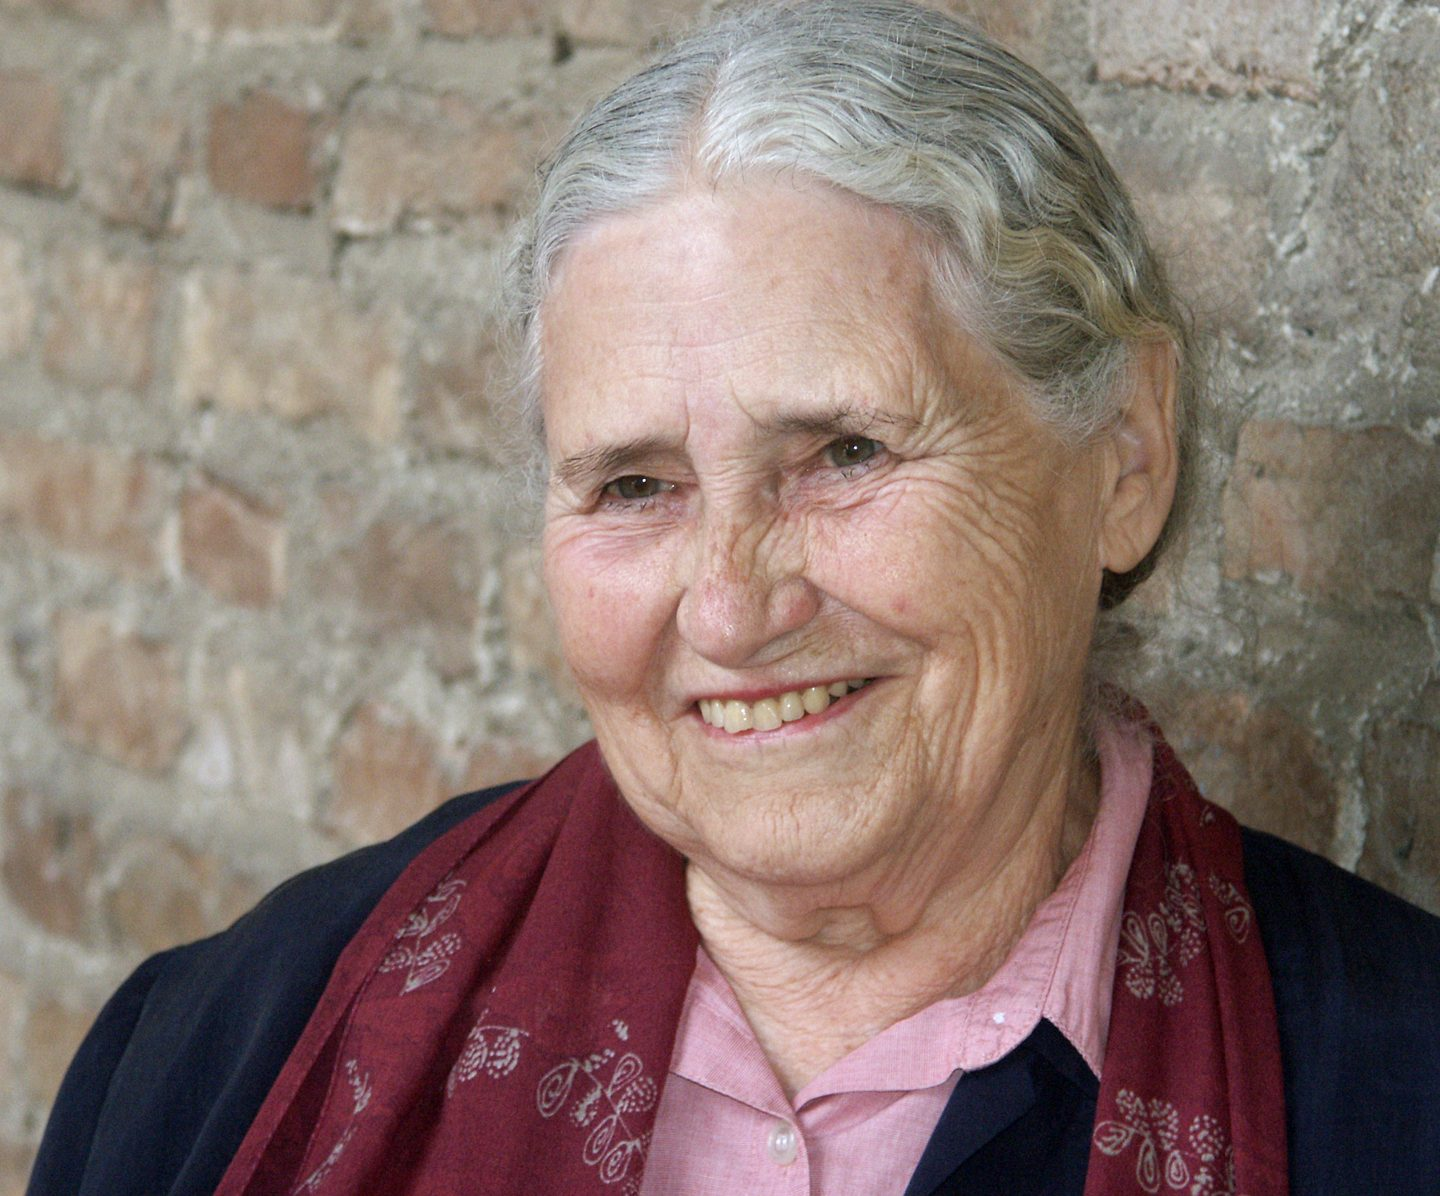 Le dieci morti di Doris Lessing